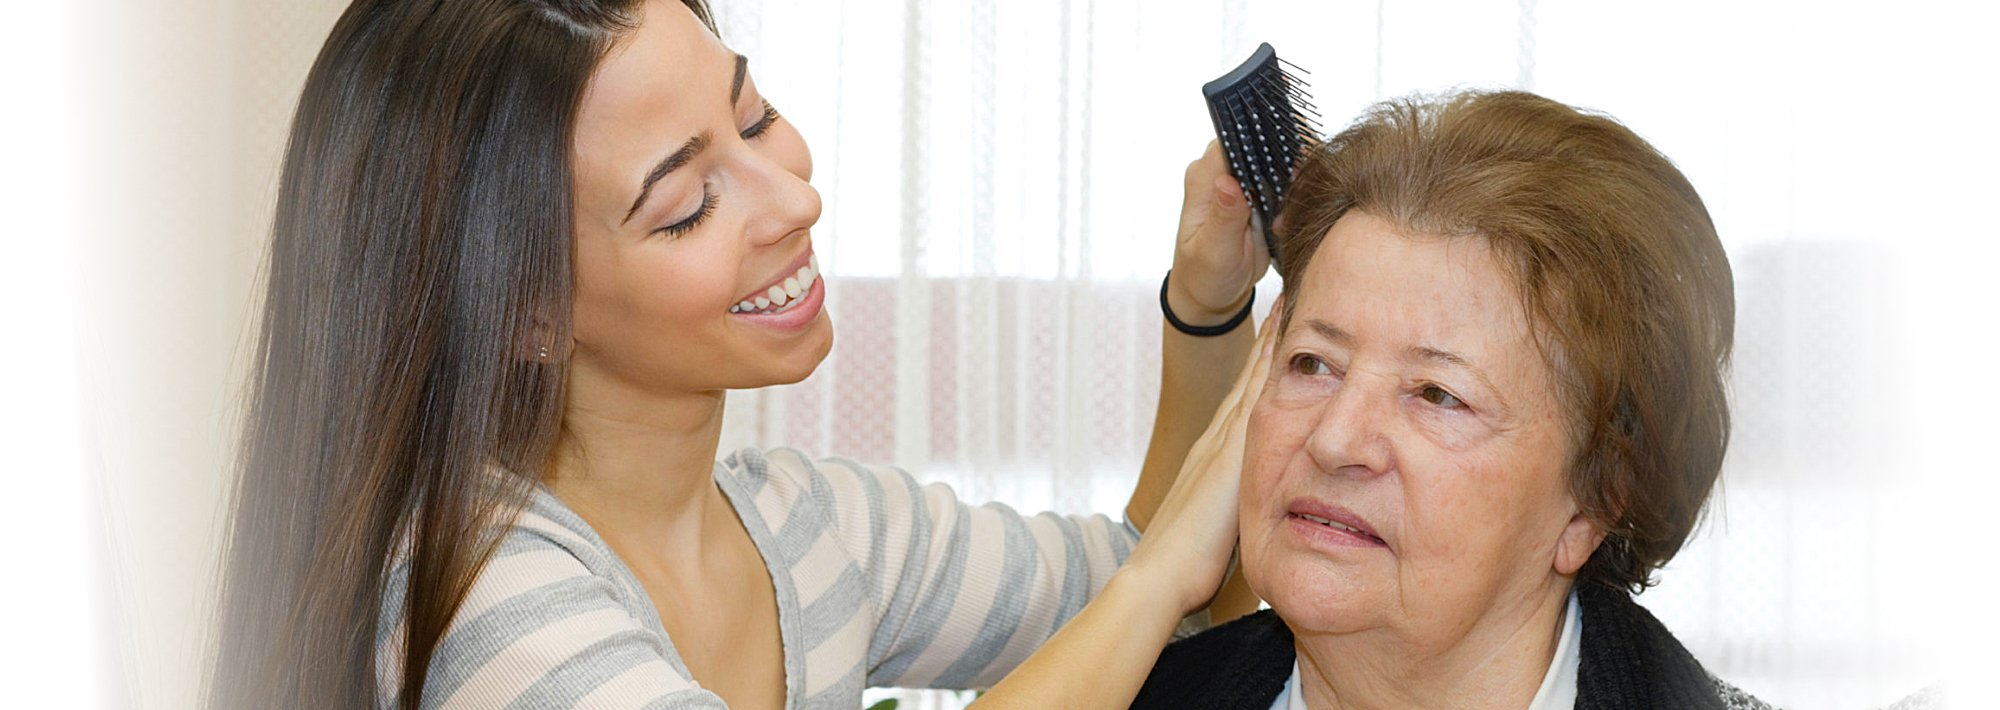 Caregiver combing the hair of a senior